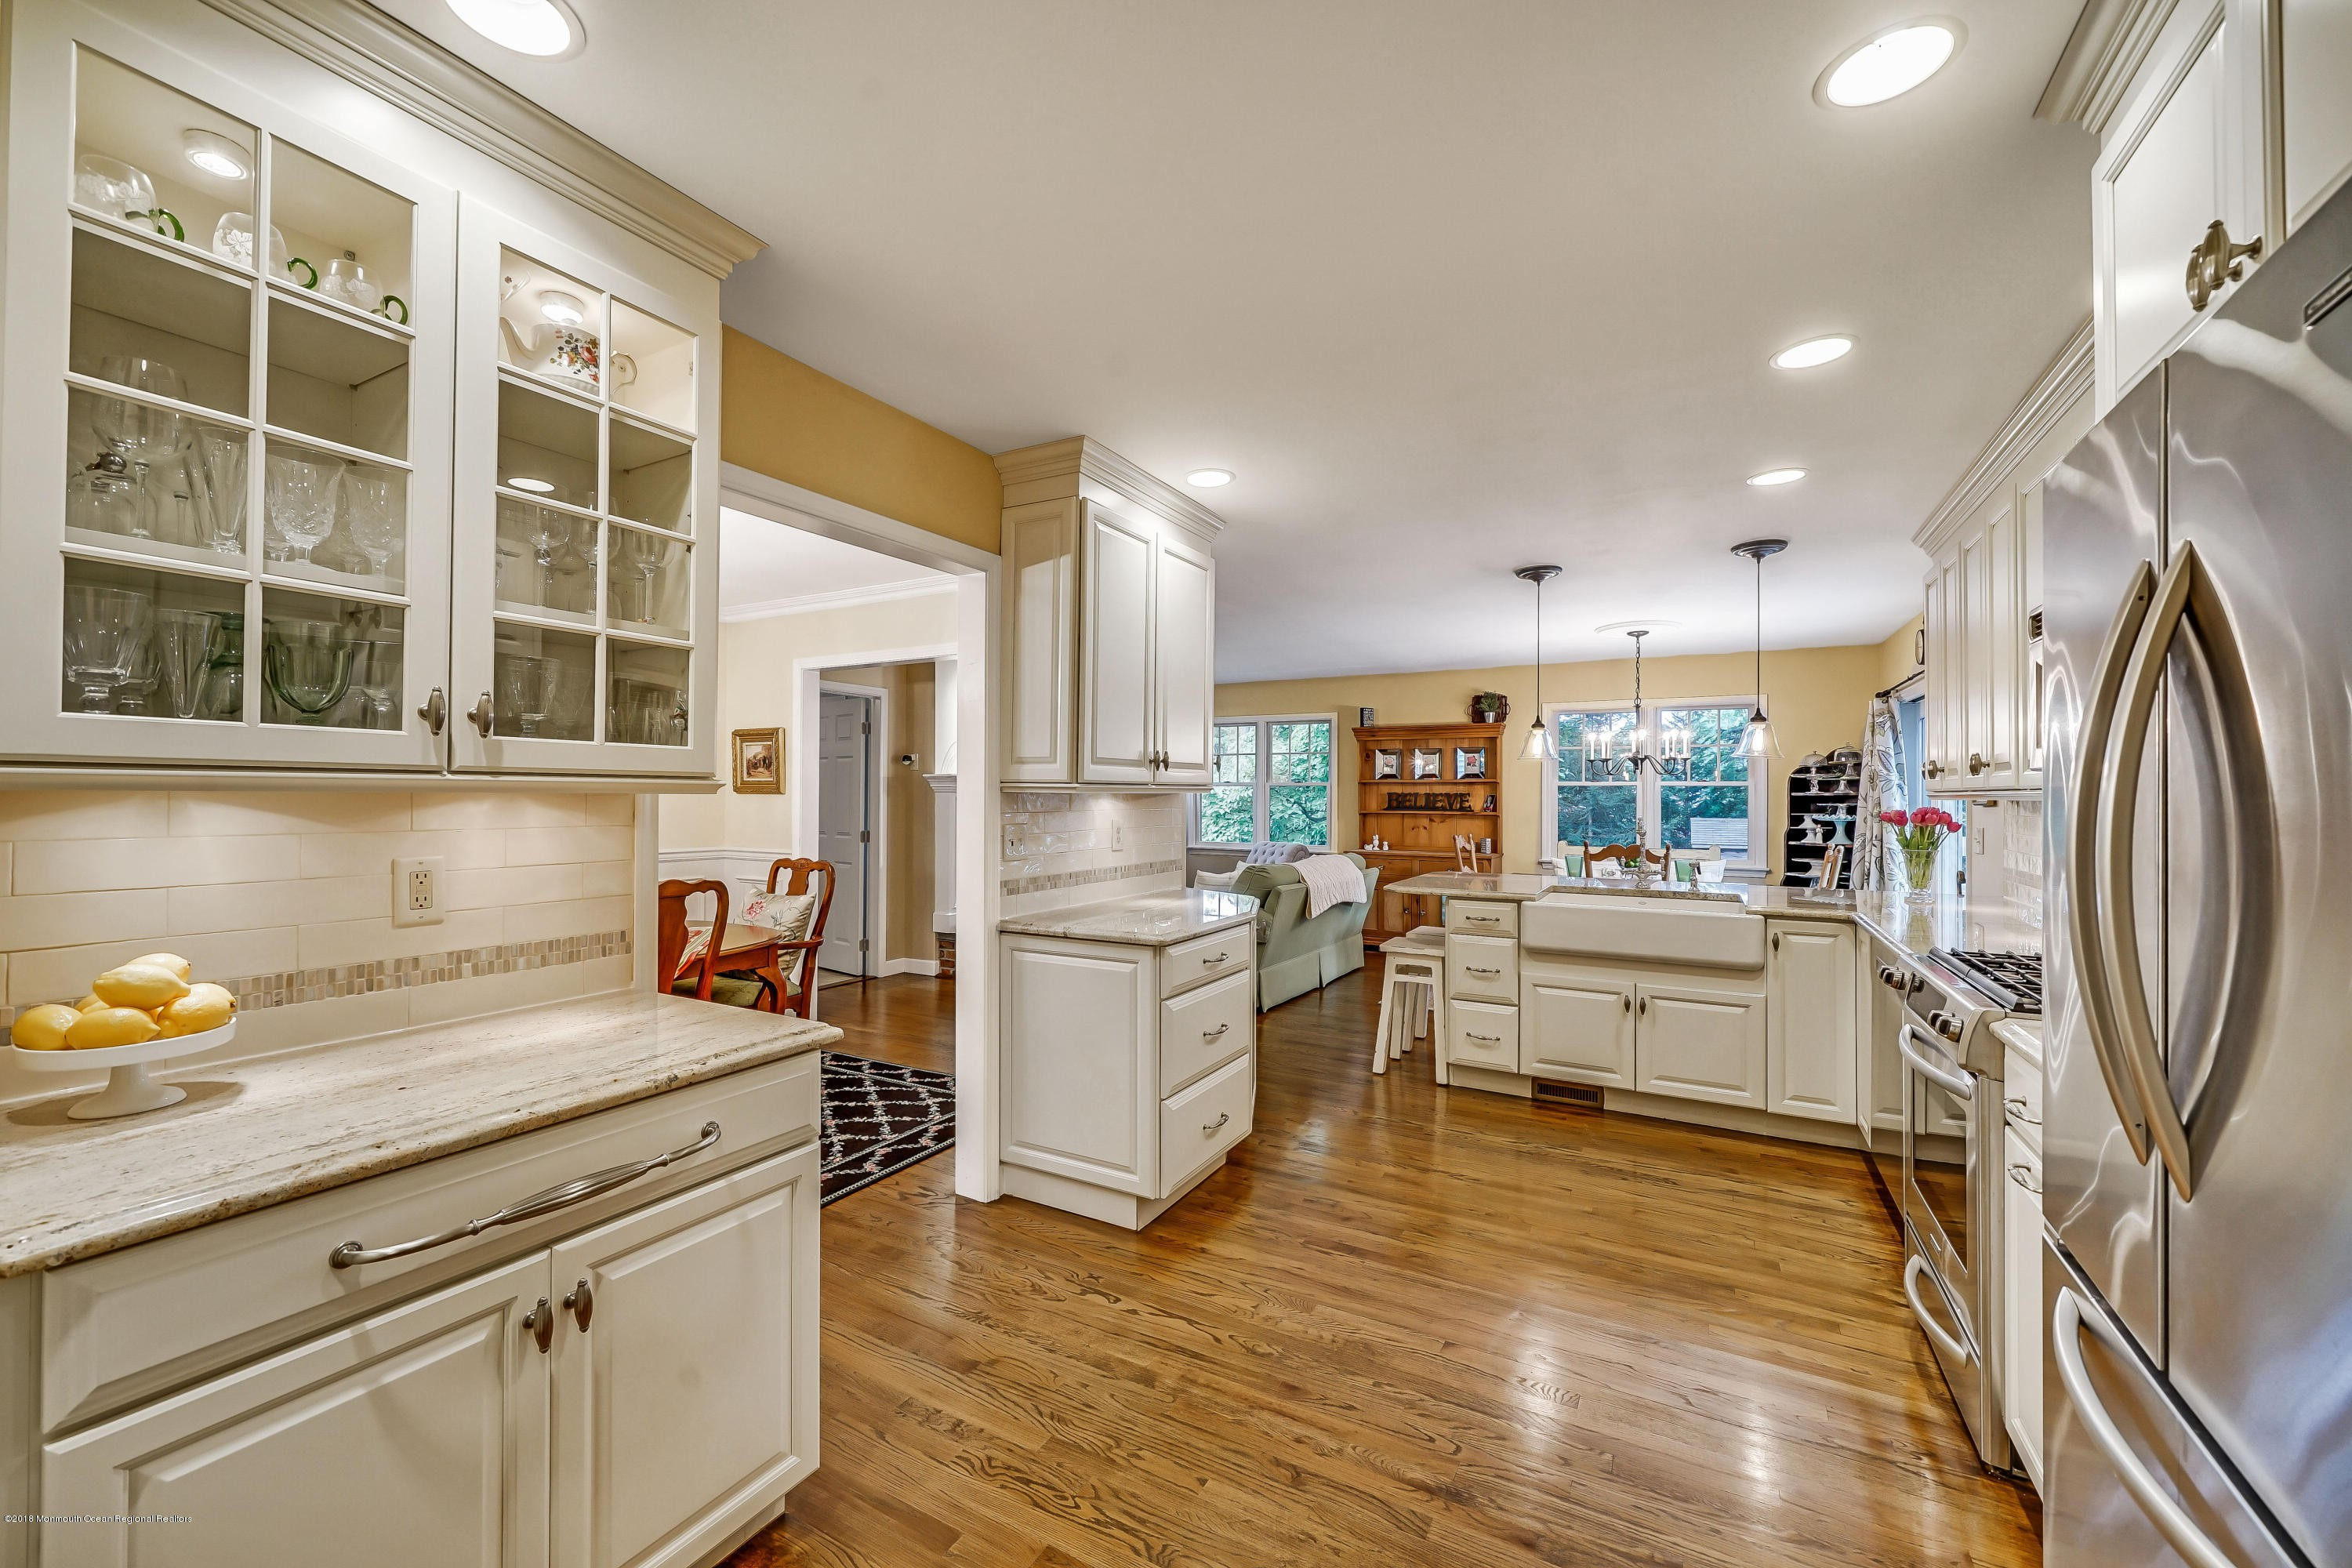 Pictures Of Hardwood Floors In Kitchens